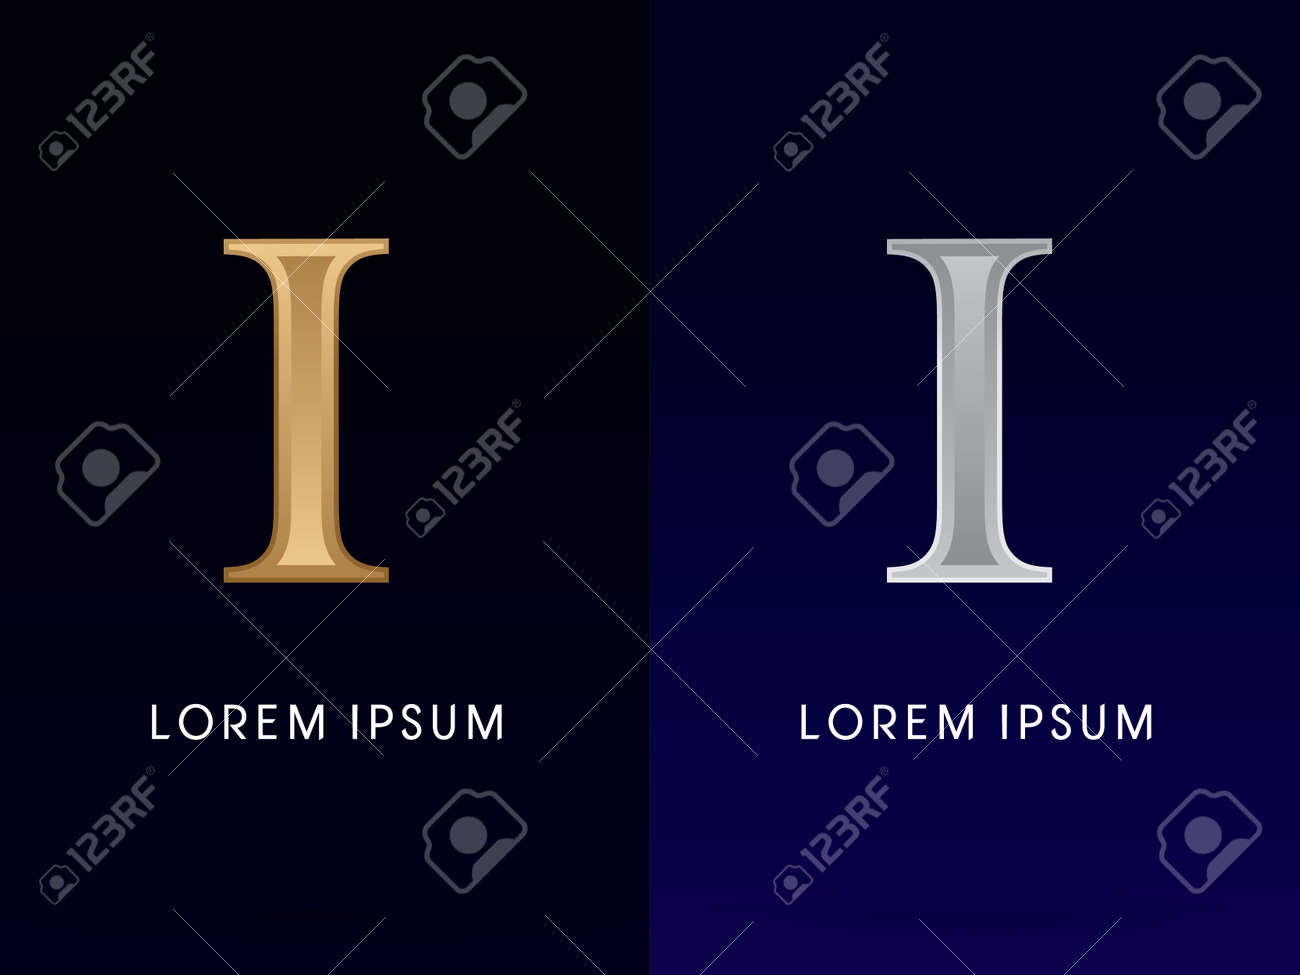 1 I Luxury Gold And Silver Roman Numerals Sign Logo Symbol